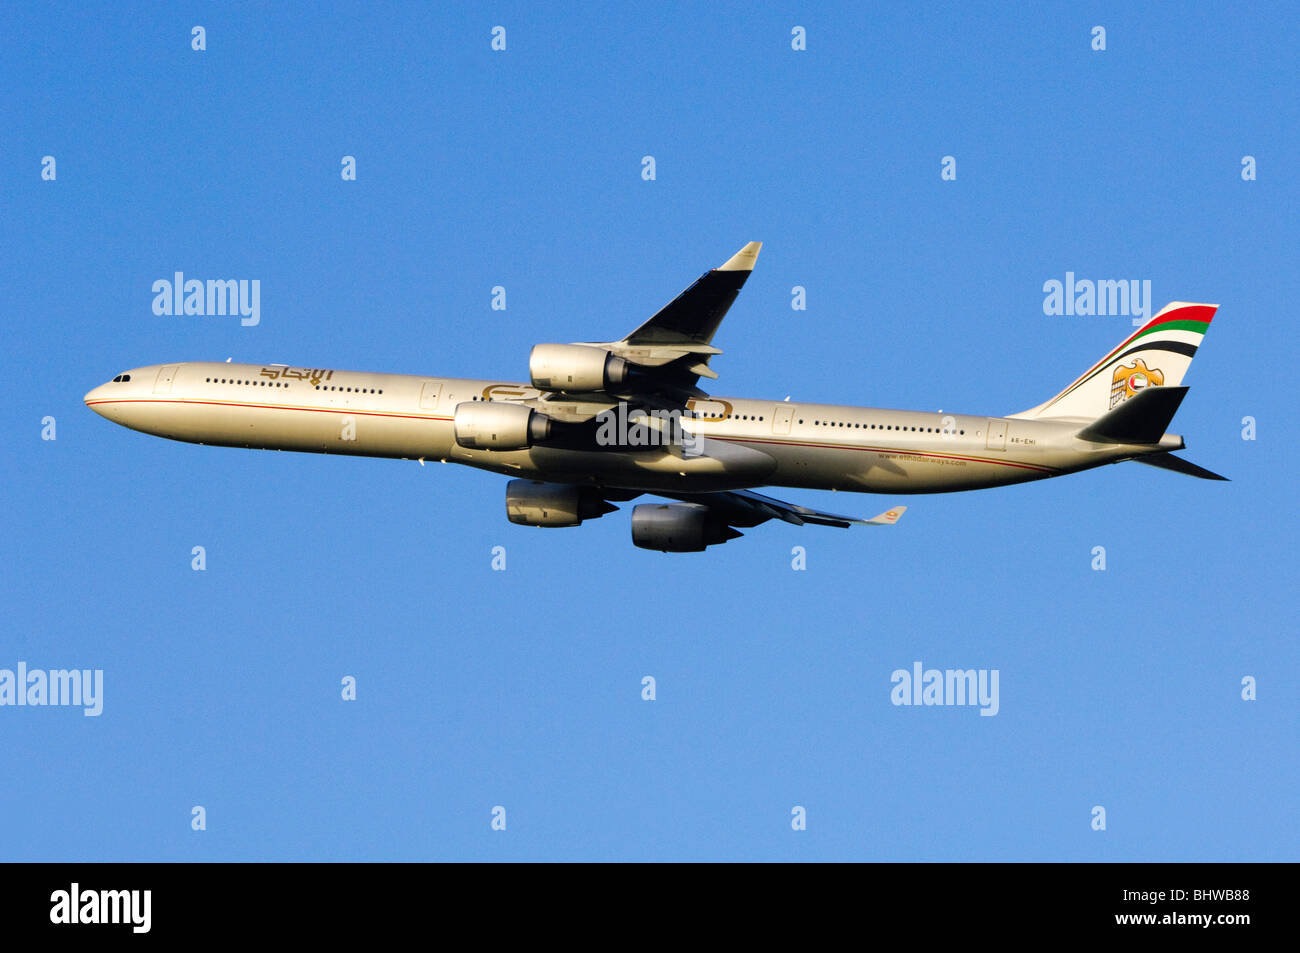 Airbus A340 operated by Etihad Airways climbing out after take off from London Heathrow Airport - Stock Image